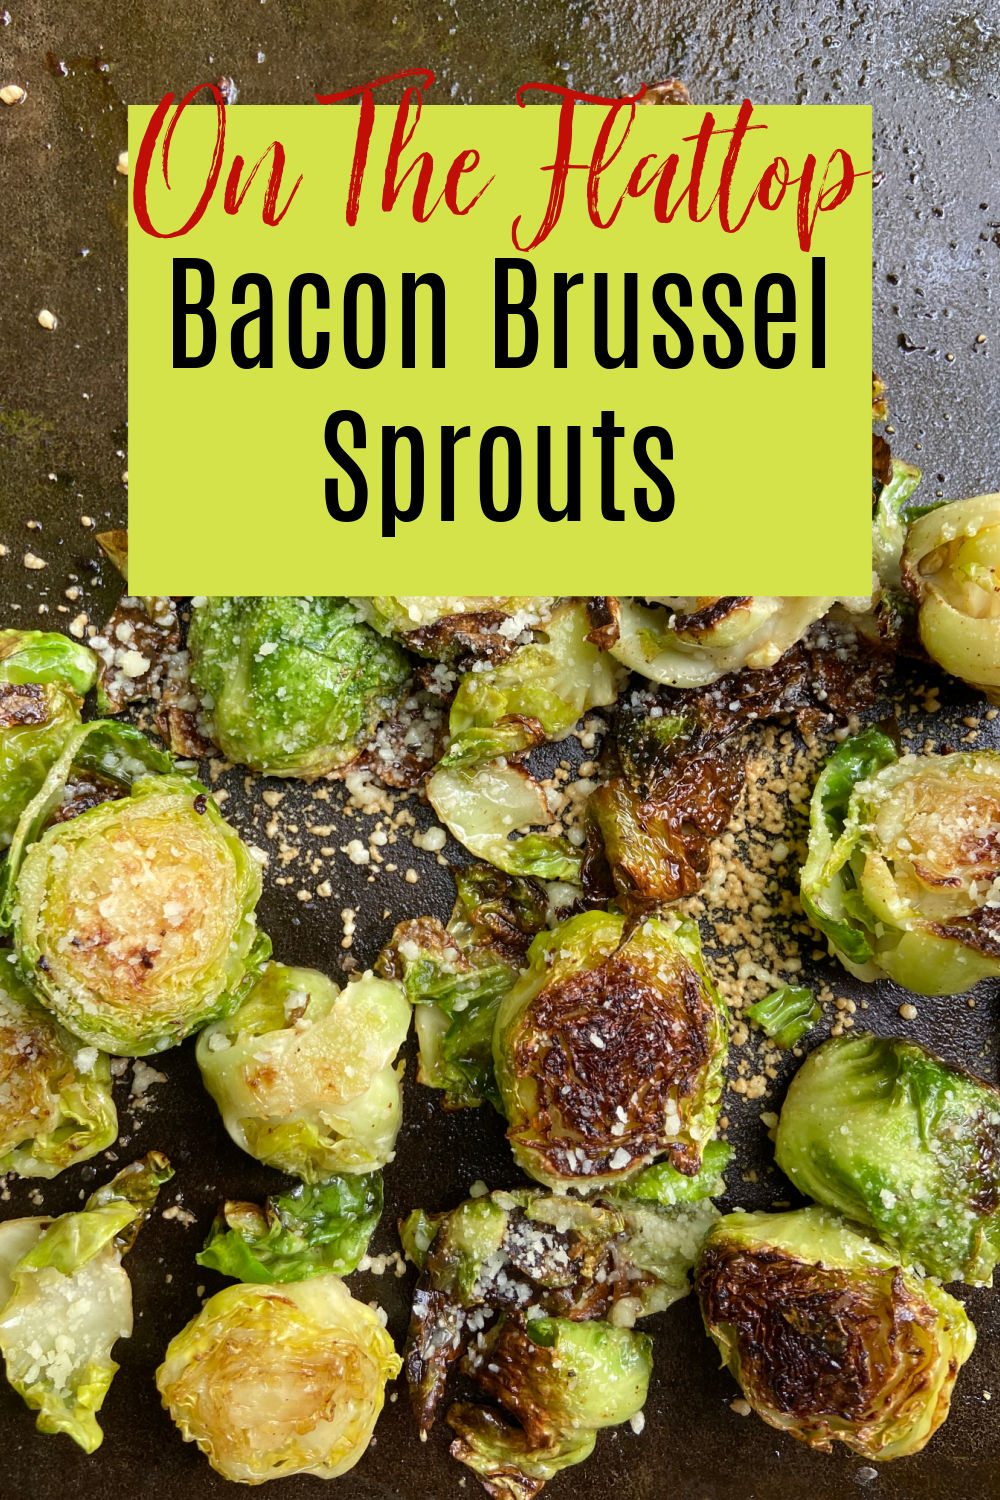 Brussel sprouts with parmesan cheese and bacon.